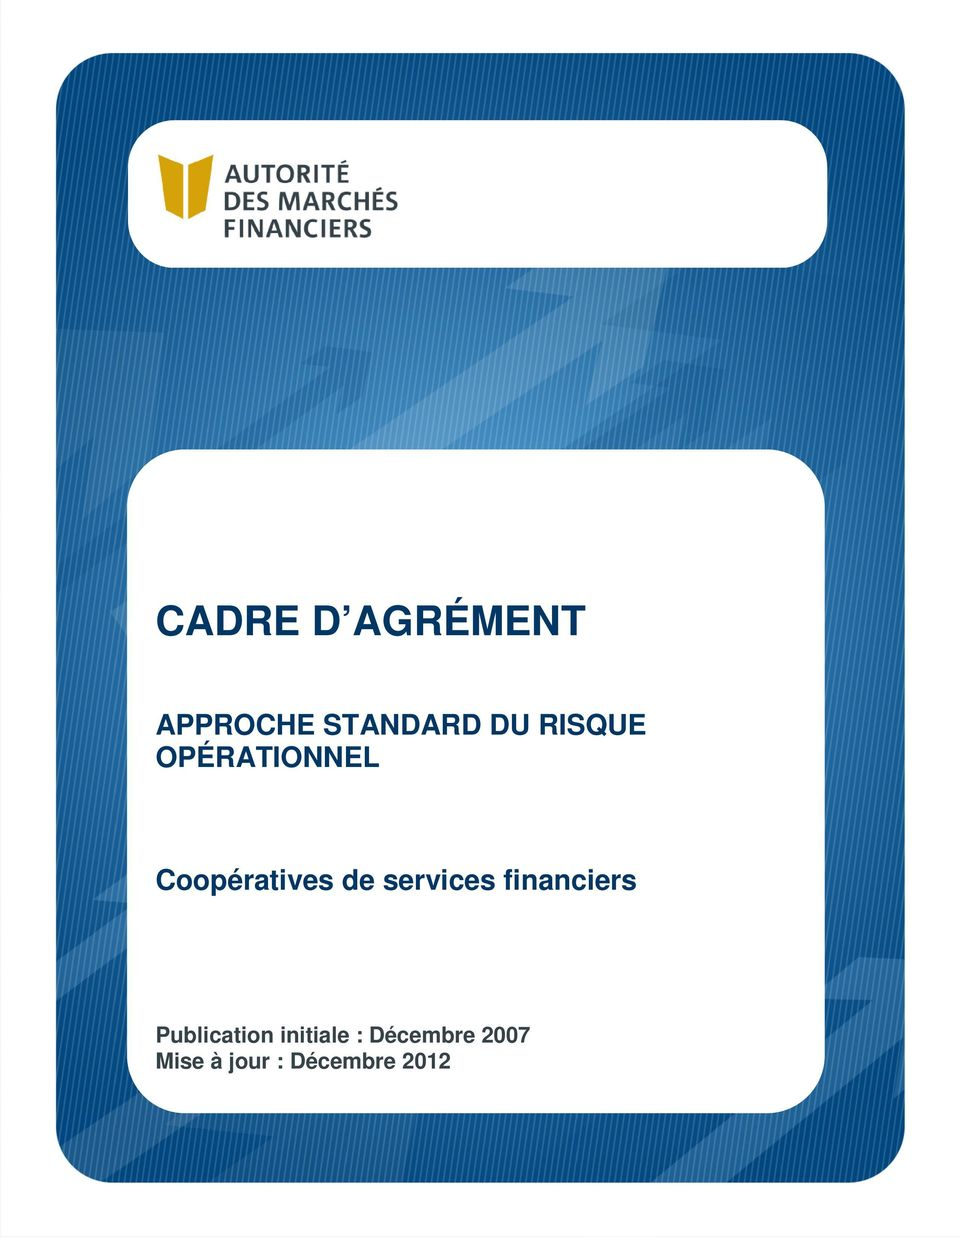 de services financiers Publication